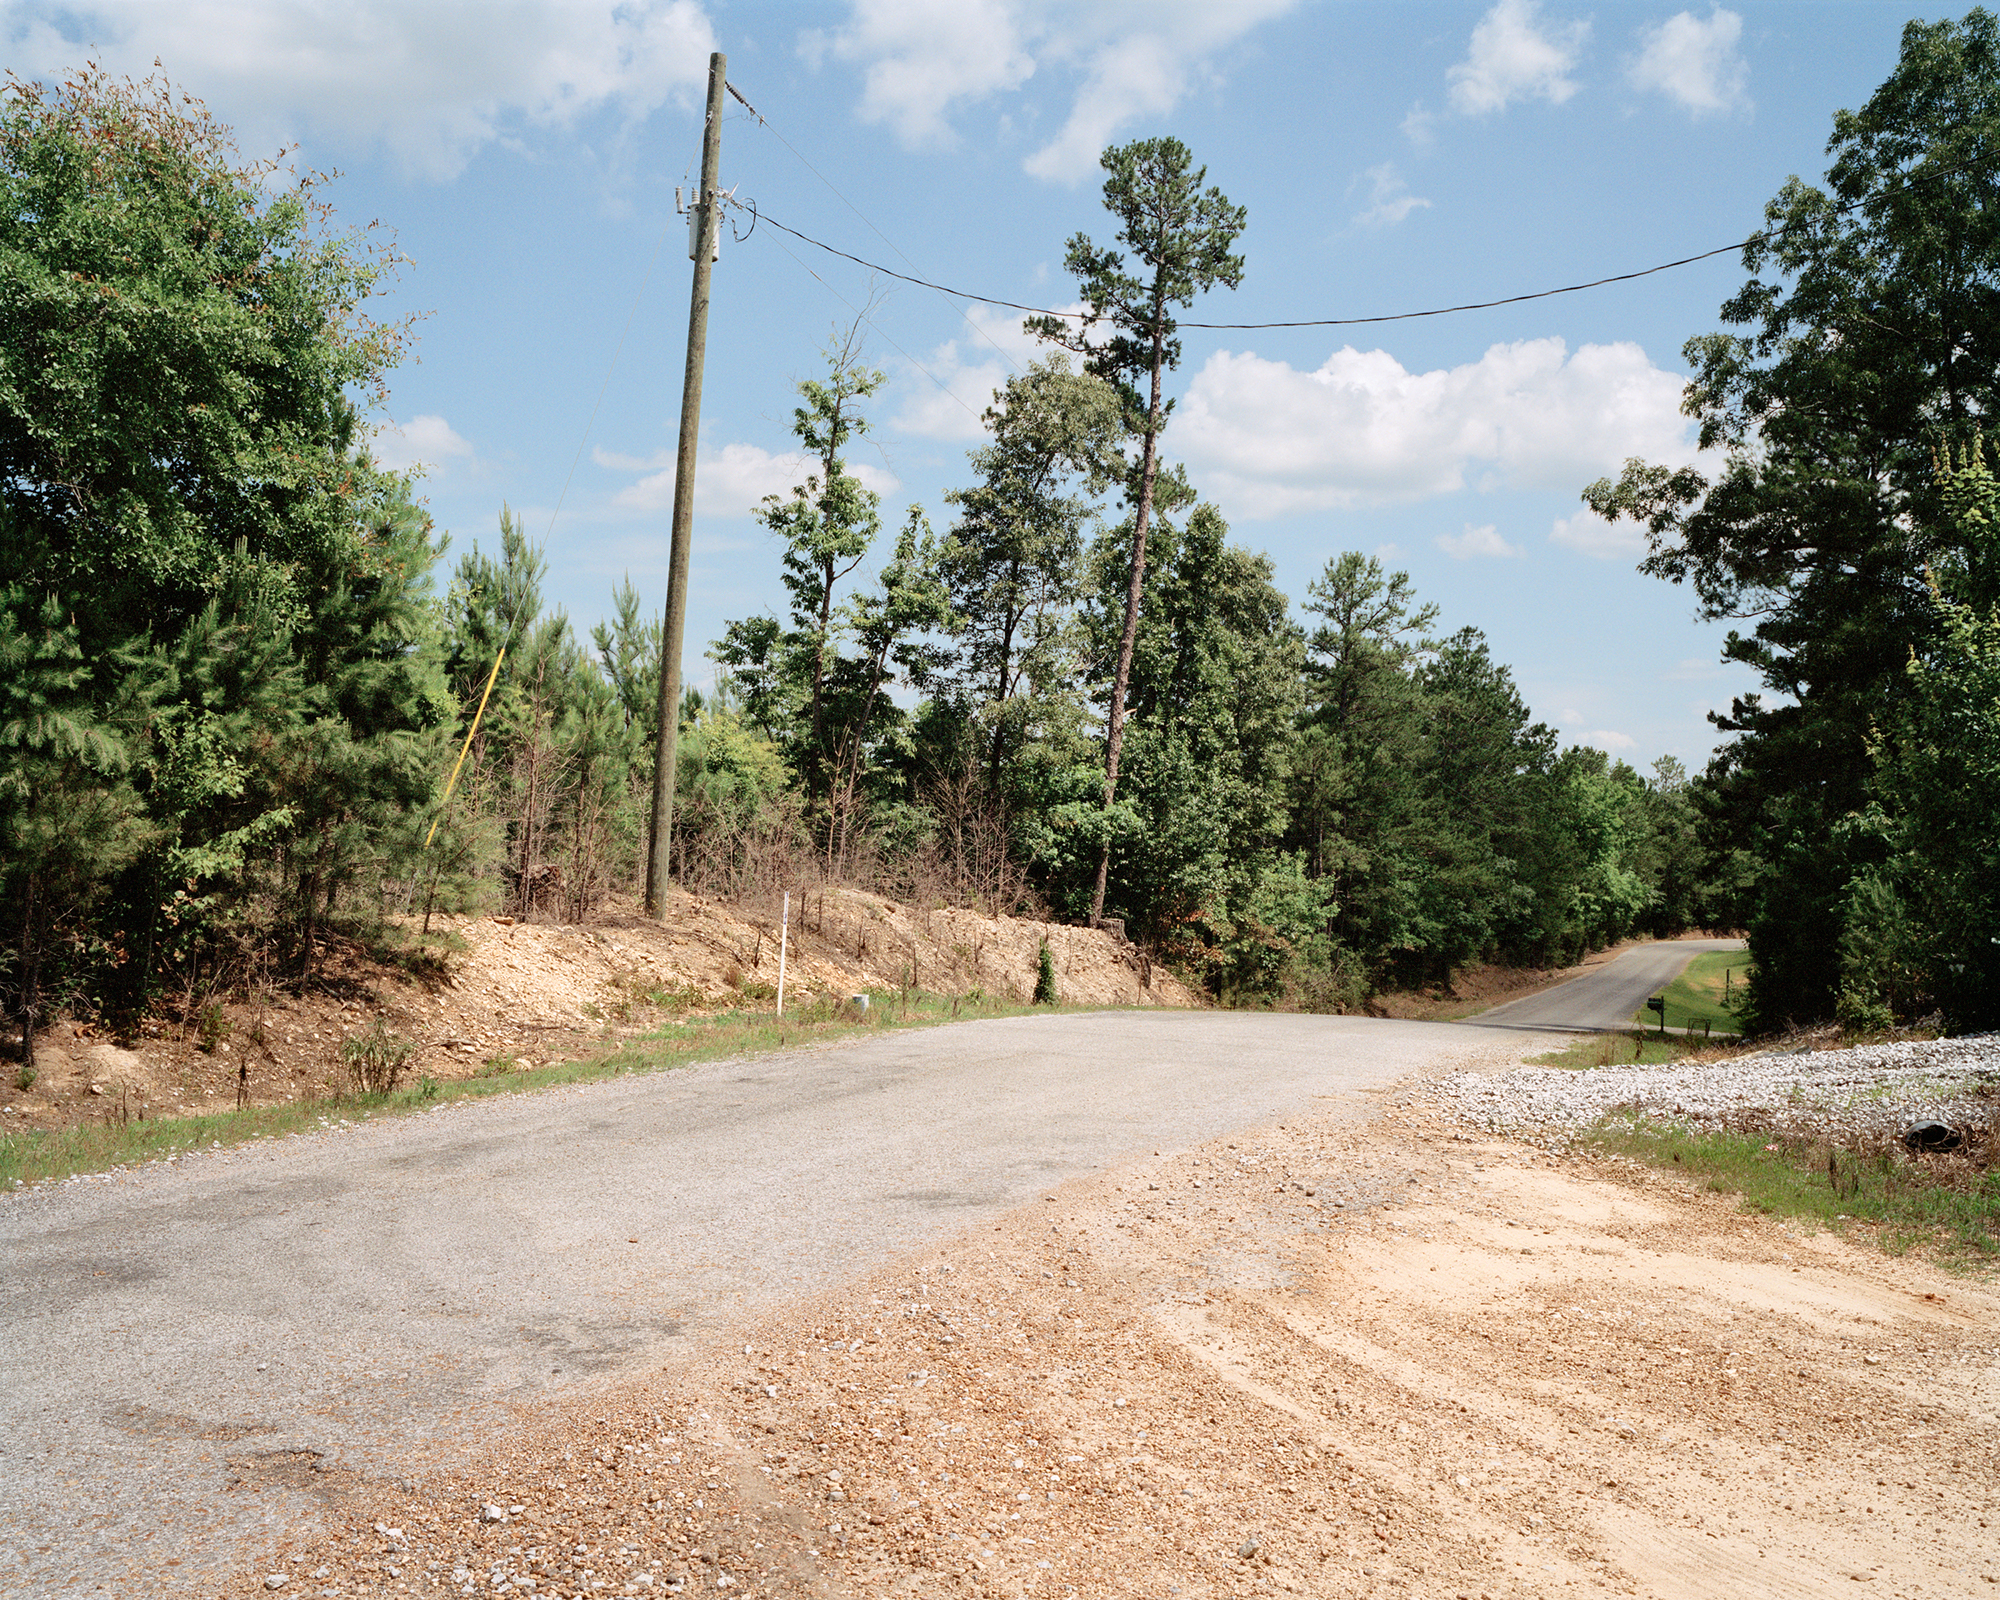 Site of Cheney Goodman Schwerner Murder, Neshoba County, Mississippi, near Philadelphia